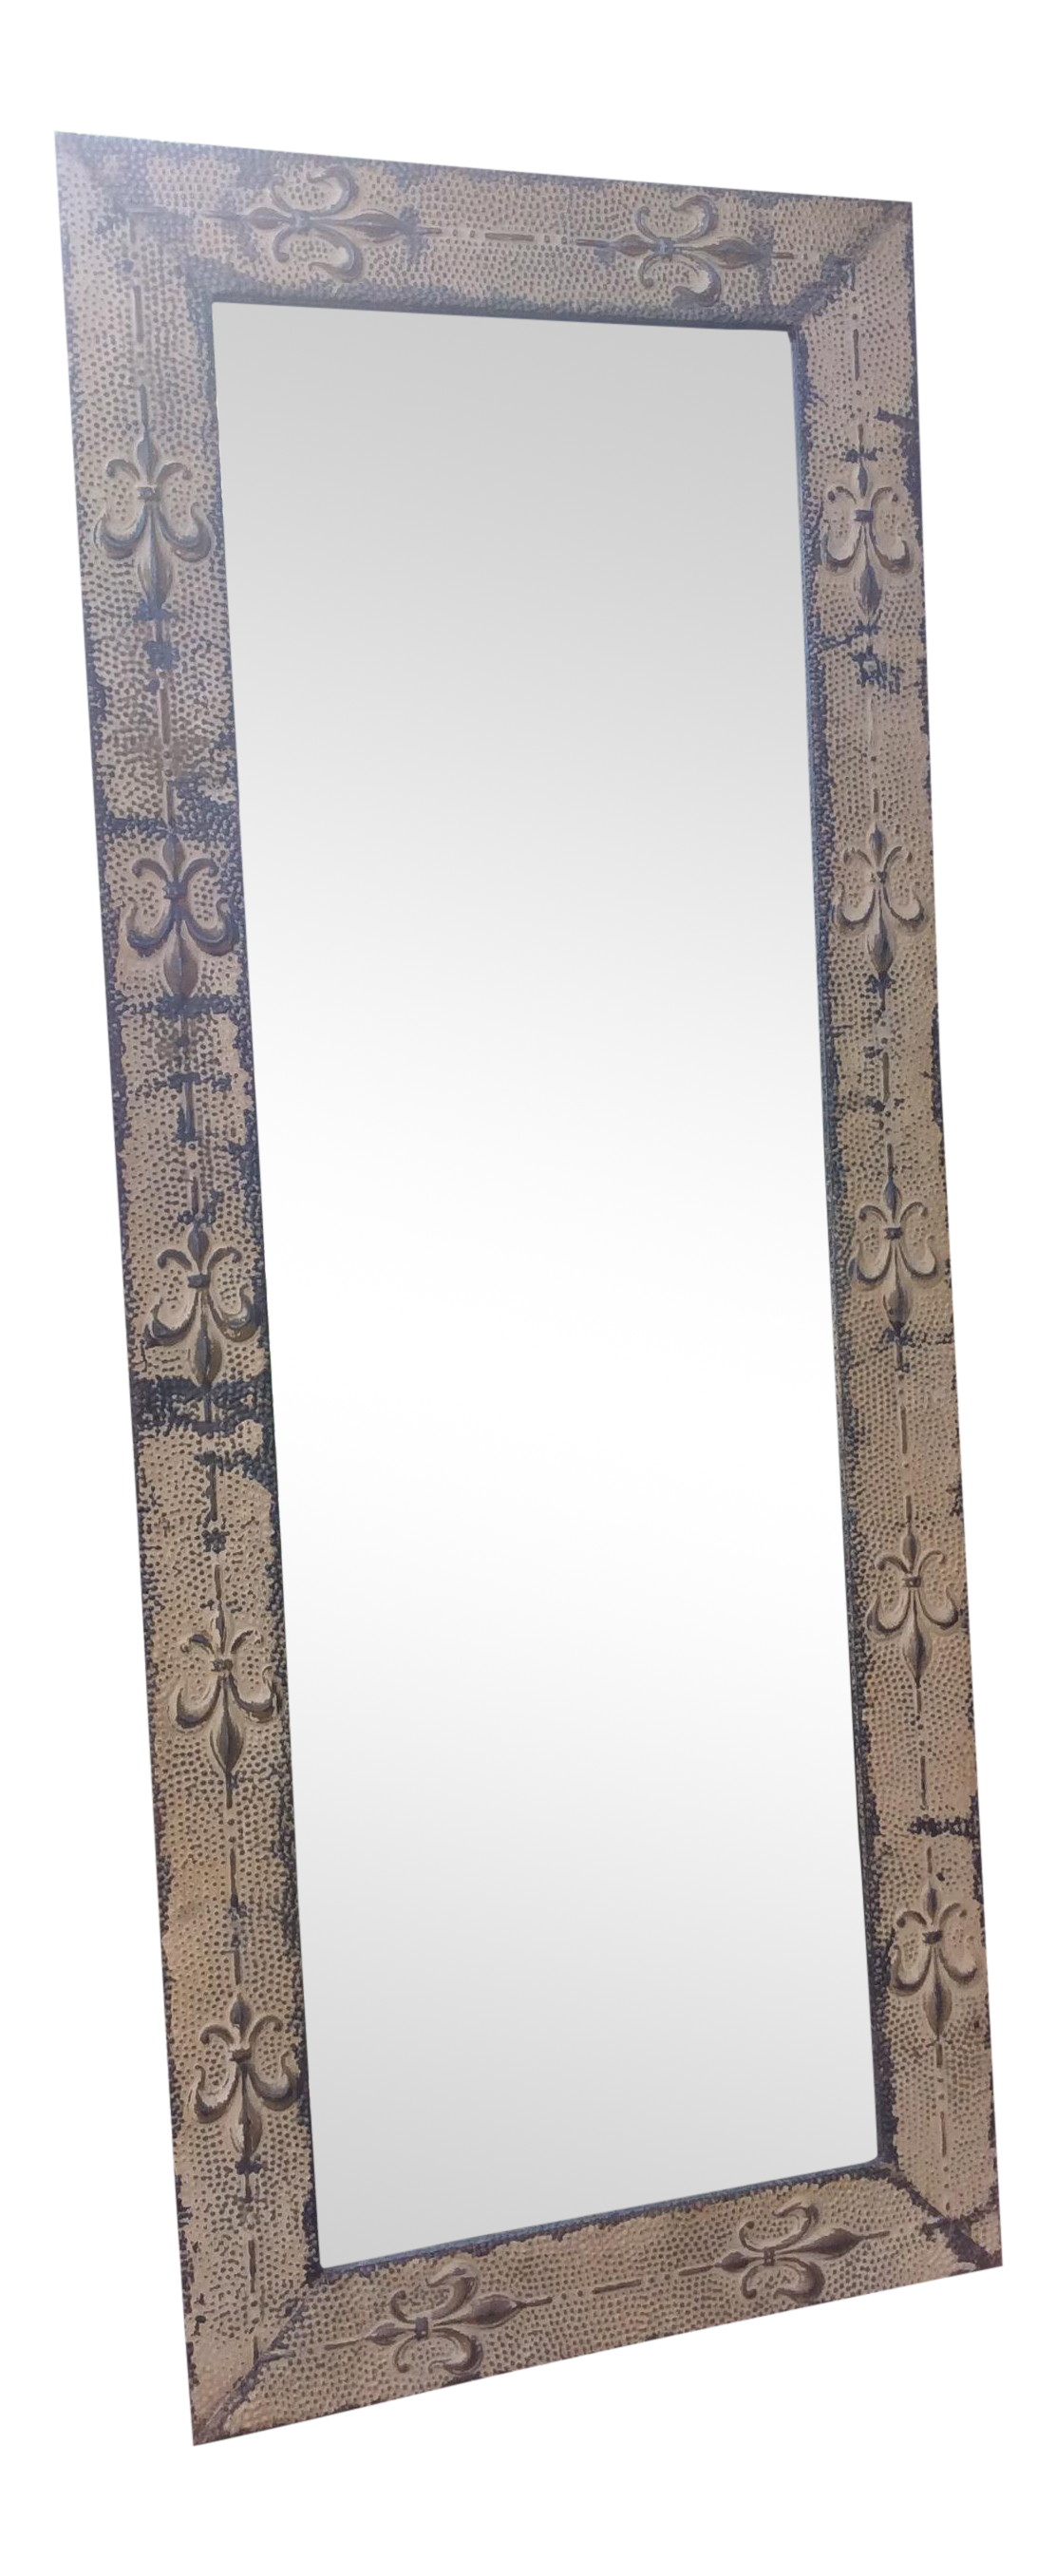 Antique tin ceiling tile mirror chairish dailygadgetfo Image collections